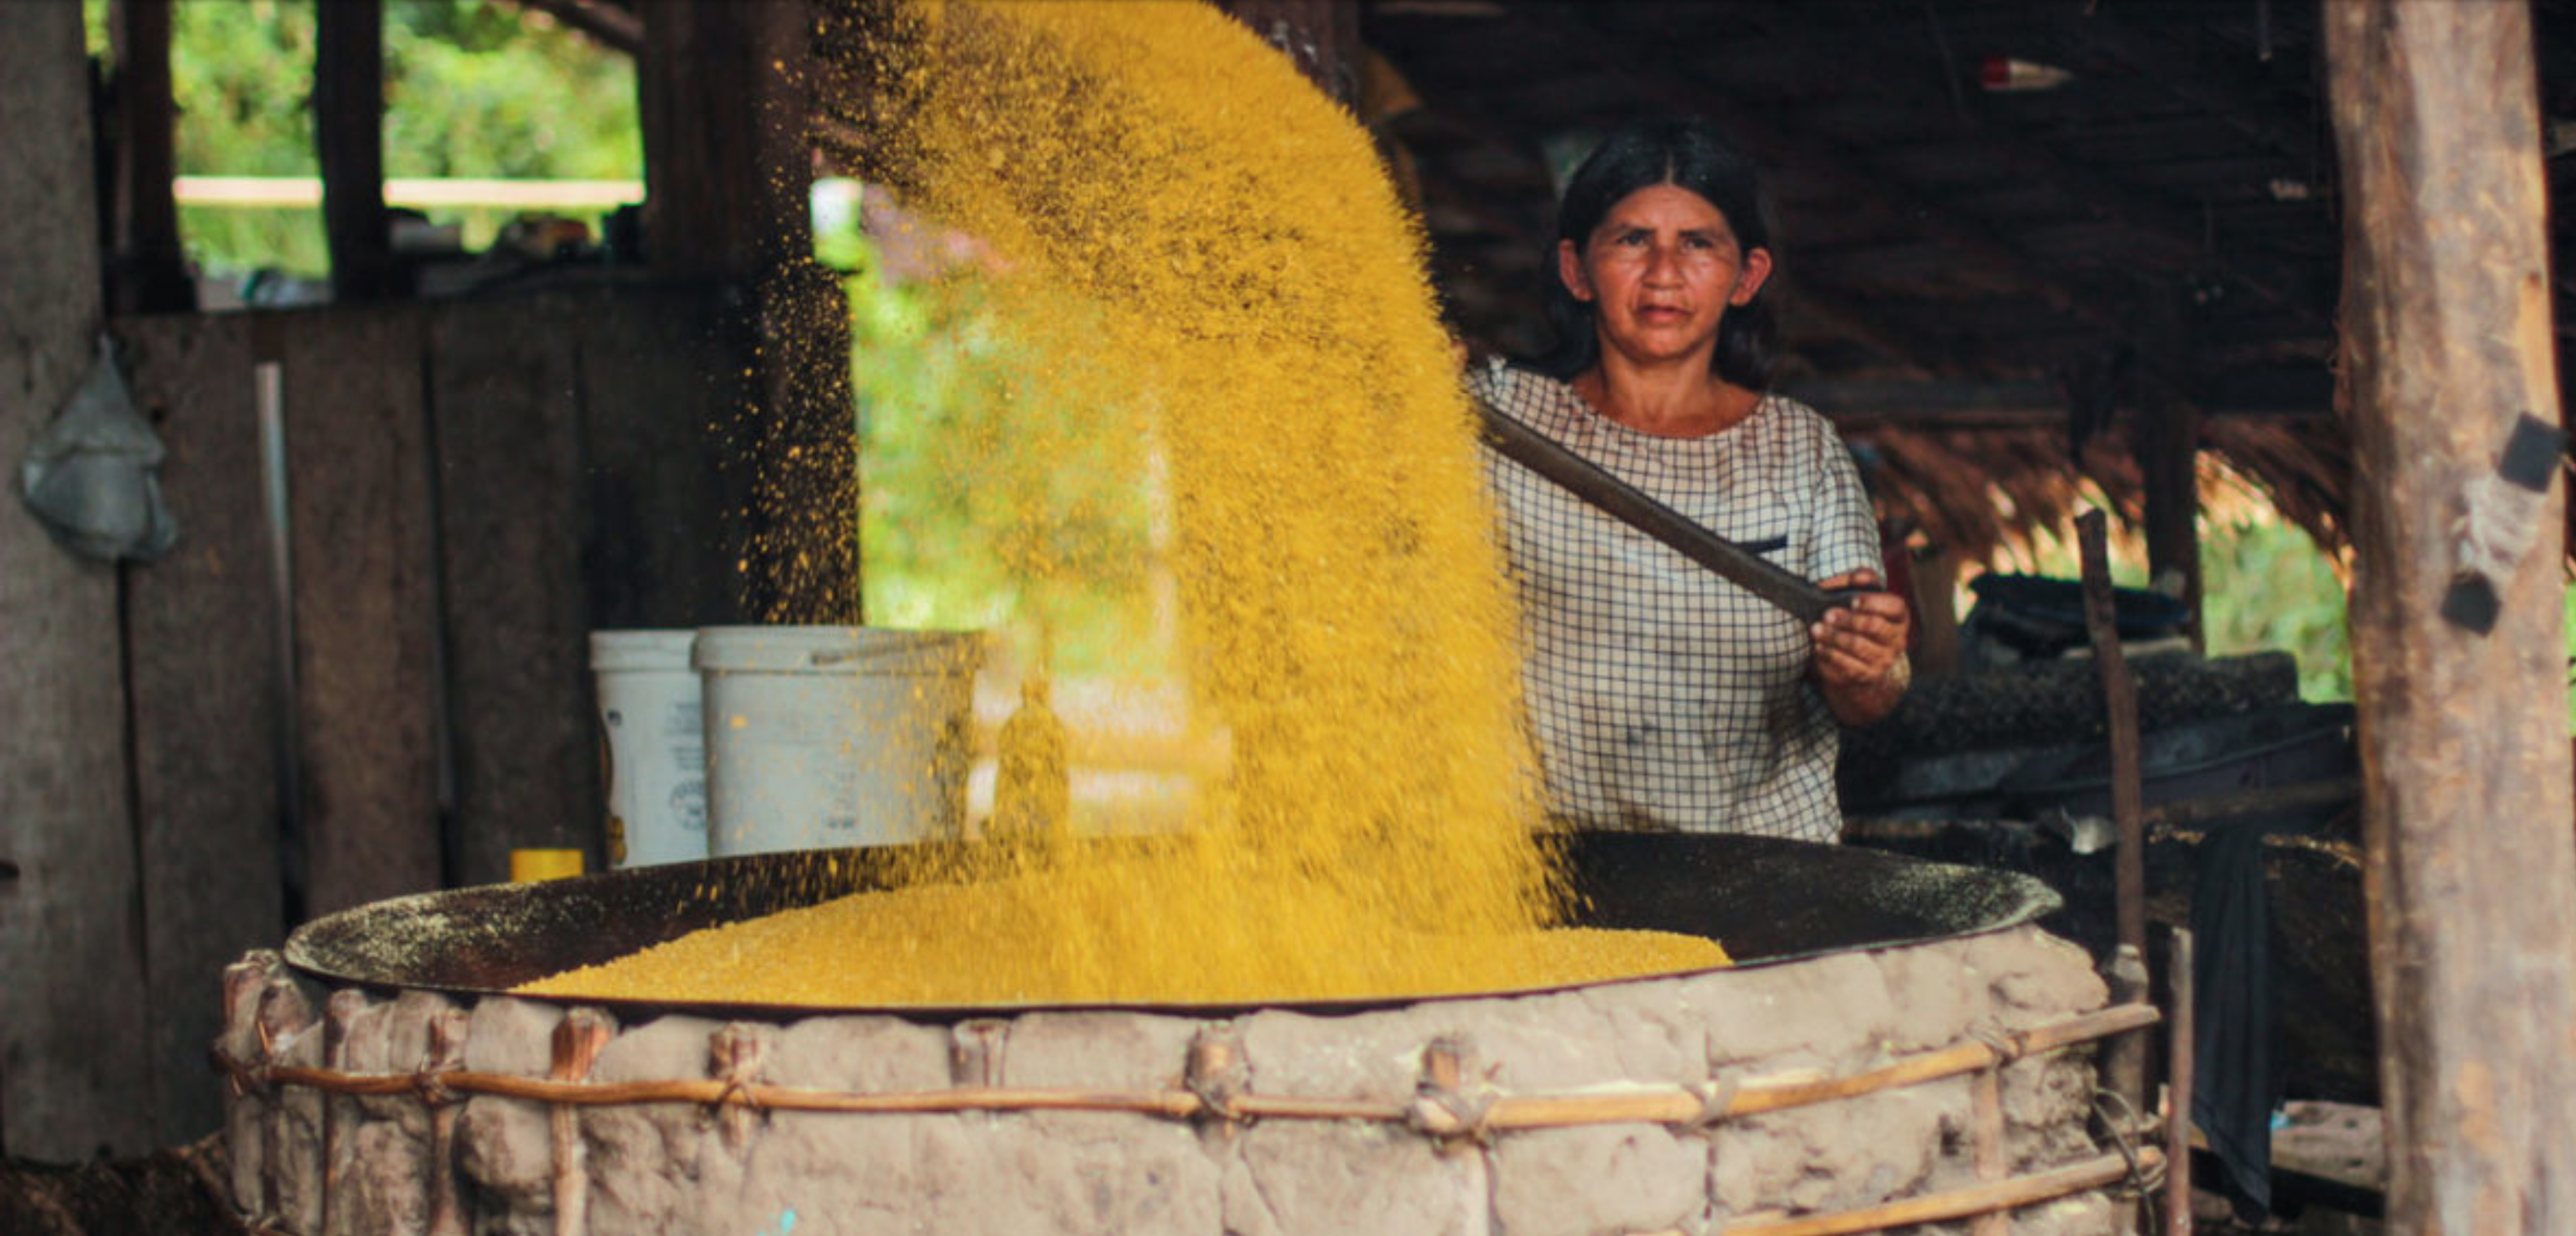 Sonia making farinha in a Sateré-Mawé village in the Brazilian Amazon. The Sateré practice a largely traditional lifestyle, relying on the forest for survival. Image by Matheus Manfredini. Brazil, 2019.